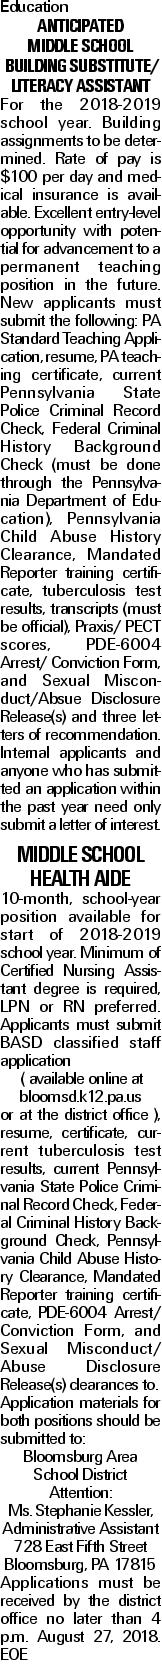 Education Anticipated Middle School Building Substitute/ Literacy Assistant For the 2018-2019 school year. Building assignments to be determined. Rate of pay is $100 per day and medical insurance is available. Excellent entry-level opportunity with potential for advancement to a permanent teaching position in the future. New applicants must submit the following: PA Standard Teaching Application, resume, PA teaching certificate, current Pennsylvania State Police Criminal Record Check, Federal Criminal History Background Check (must be done through the Pennsylvania Department of Education), Pennsylvania Child Abuse History Clearance, Mandated Reporter training certificate, tuberculosis test results, transcripts (must be official), Praxis/ PECT scores, PDE-6004 Arrest/ Conviction Form, and Sexual Misconduct/Absue Disclosure Release(s) and three letters of recommendation. Internal applicants and anyone who has submitted an application within the past year need only submit a letter of interest. Middle School Health Aide 10-month, school-year position available for start of 2018-2019 school year. Minimum of Certified Nursing Assistant degree is required, LPN or RN preferred. Applicants must submit BASD classified staff application ( available online at bloomsd.k12.pa.us or at the district office ), resume, certificate, current tuberculosis test results, current Pennsylvania State Police Criminal Record Check, Federal Criminal History Background Check, Pennsylvania Child Abuse History Clearance, Mandated Reporter training certificate, PDE-6004 Arrest/ Conviction Form, and Sexual Misconduct/ Abuse Disclosure Release(s) clearances to. Application materials for both positions should be submitted to: Bloomsburg Area School District Attention: Ms. Stephanie Kessler, Administrative Assistant 728 East Fifth Street Bloomsburg, PA 17815 Applications must be received by the district office no later than 4 p.m. August 27, 2018. EOE